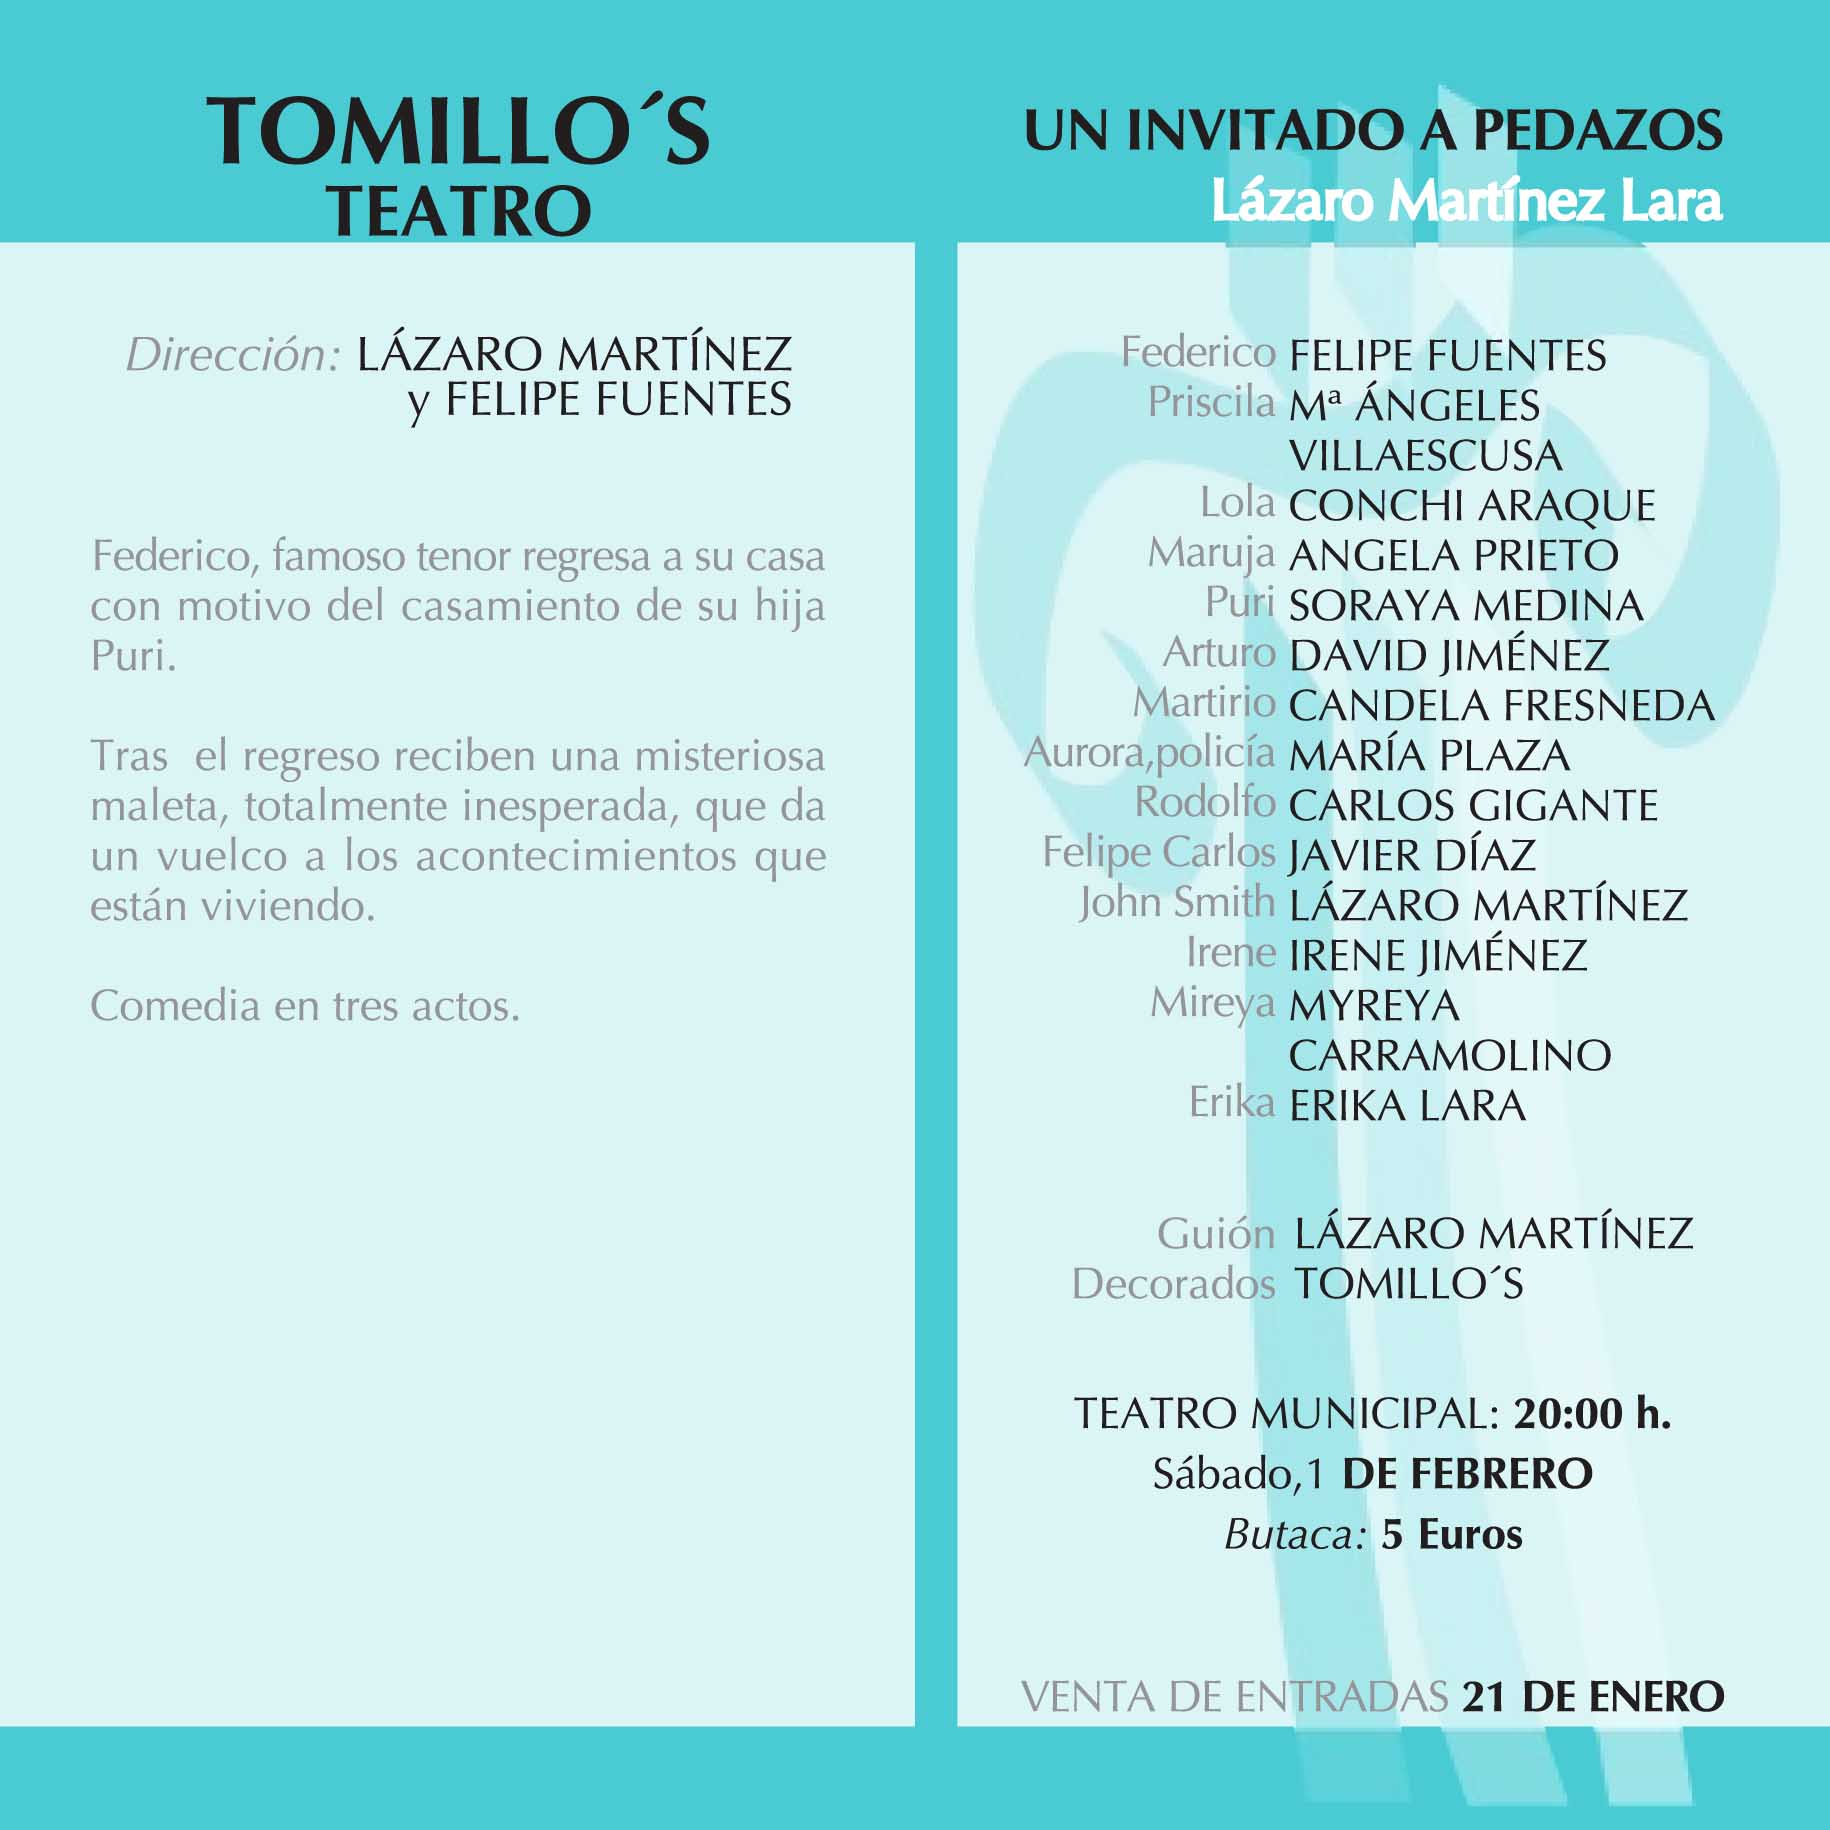 Tomillos